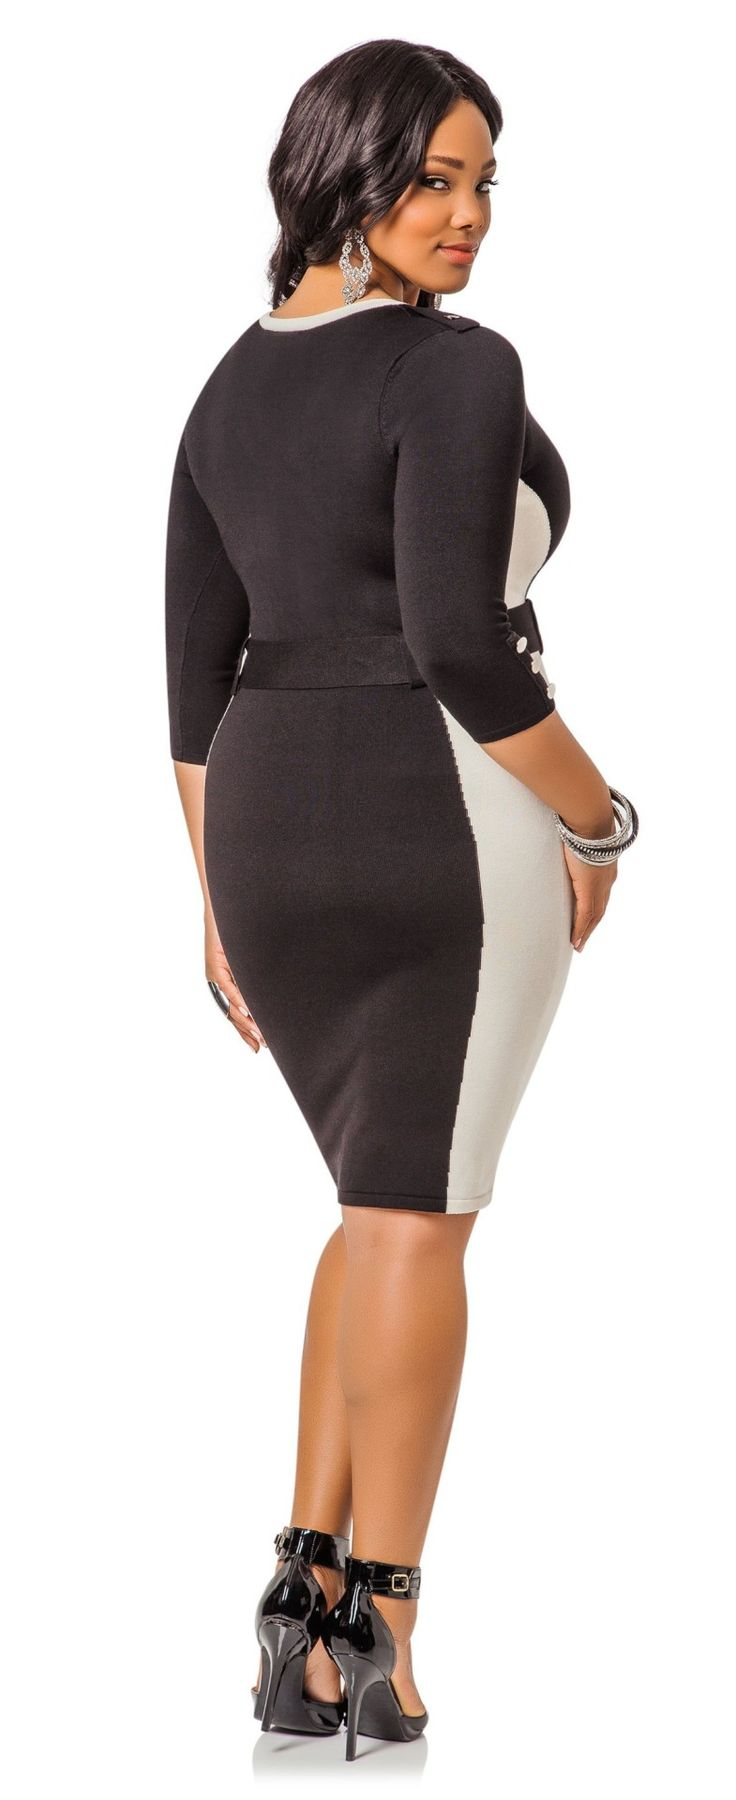 Anita Marshall in Ashley Stewart Colorblock Belted Sweater Dress